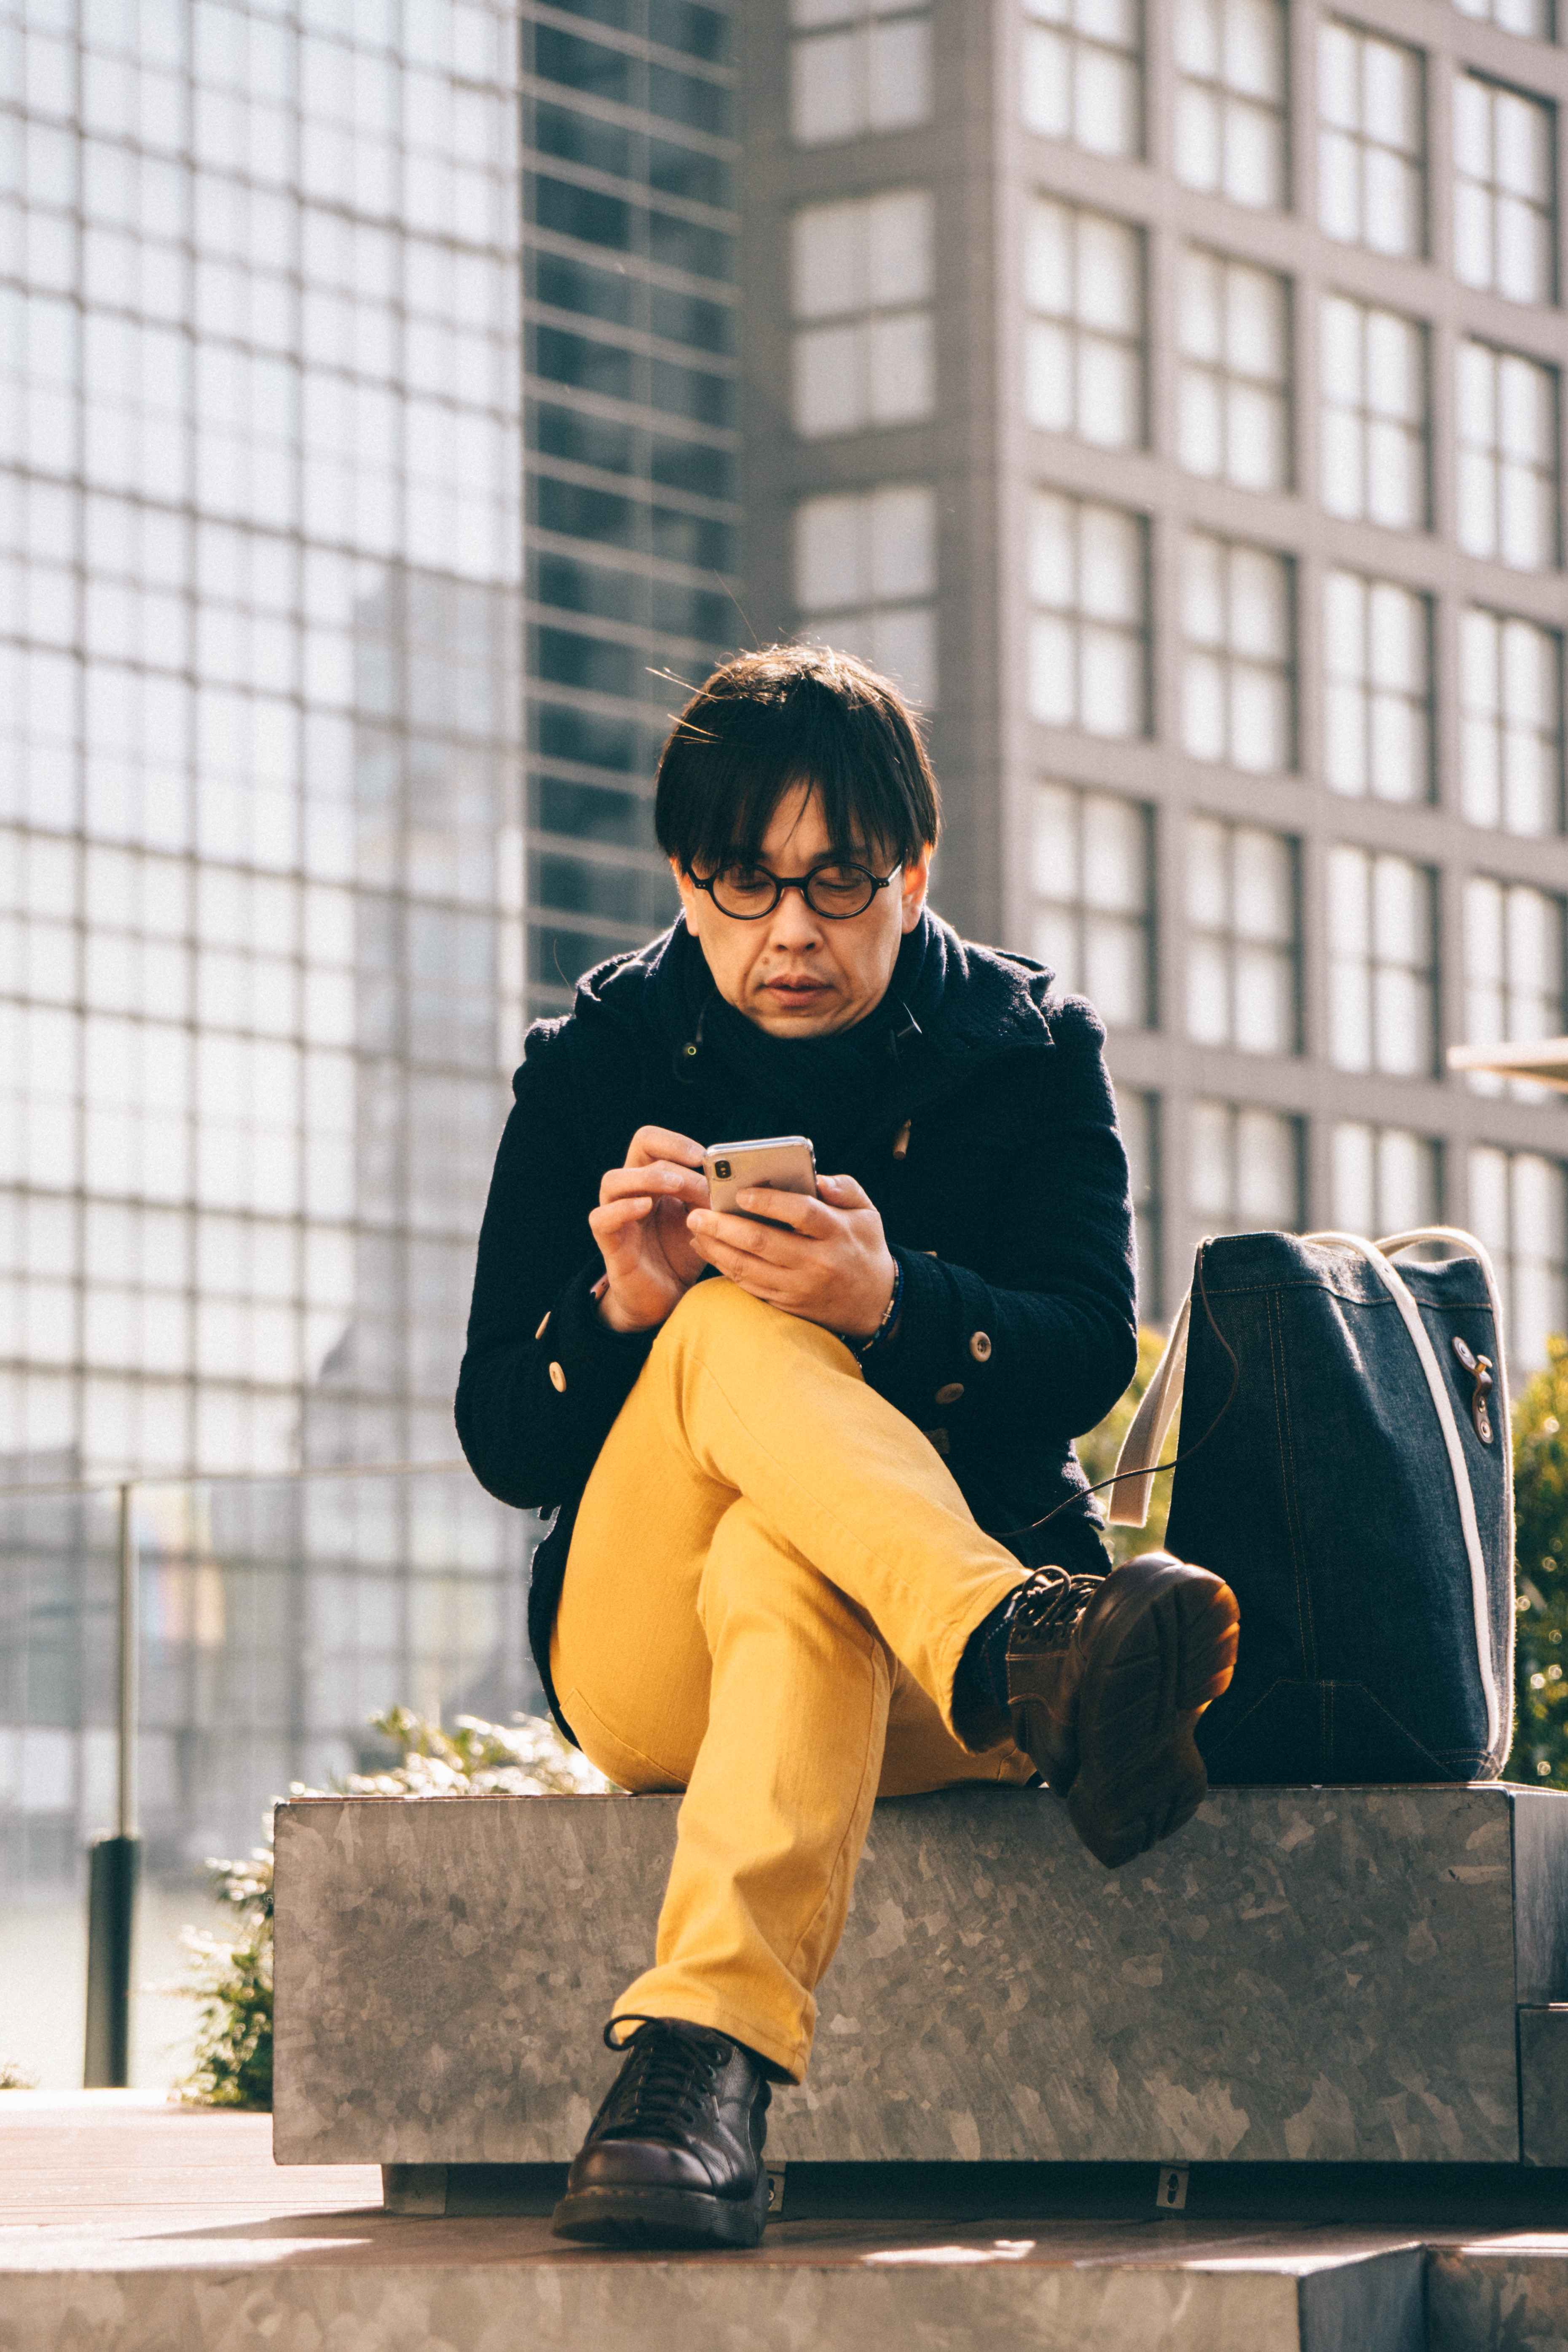 man using smartphone sitting on concrete bench